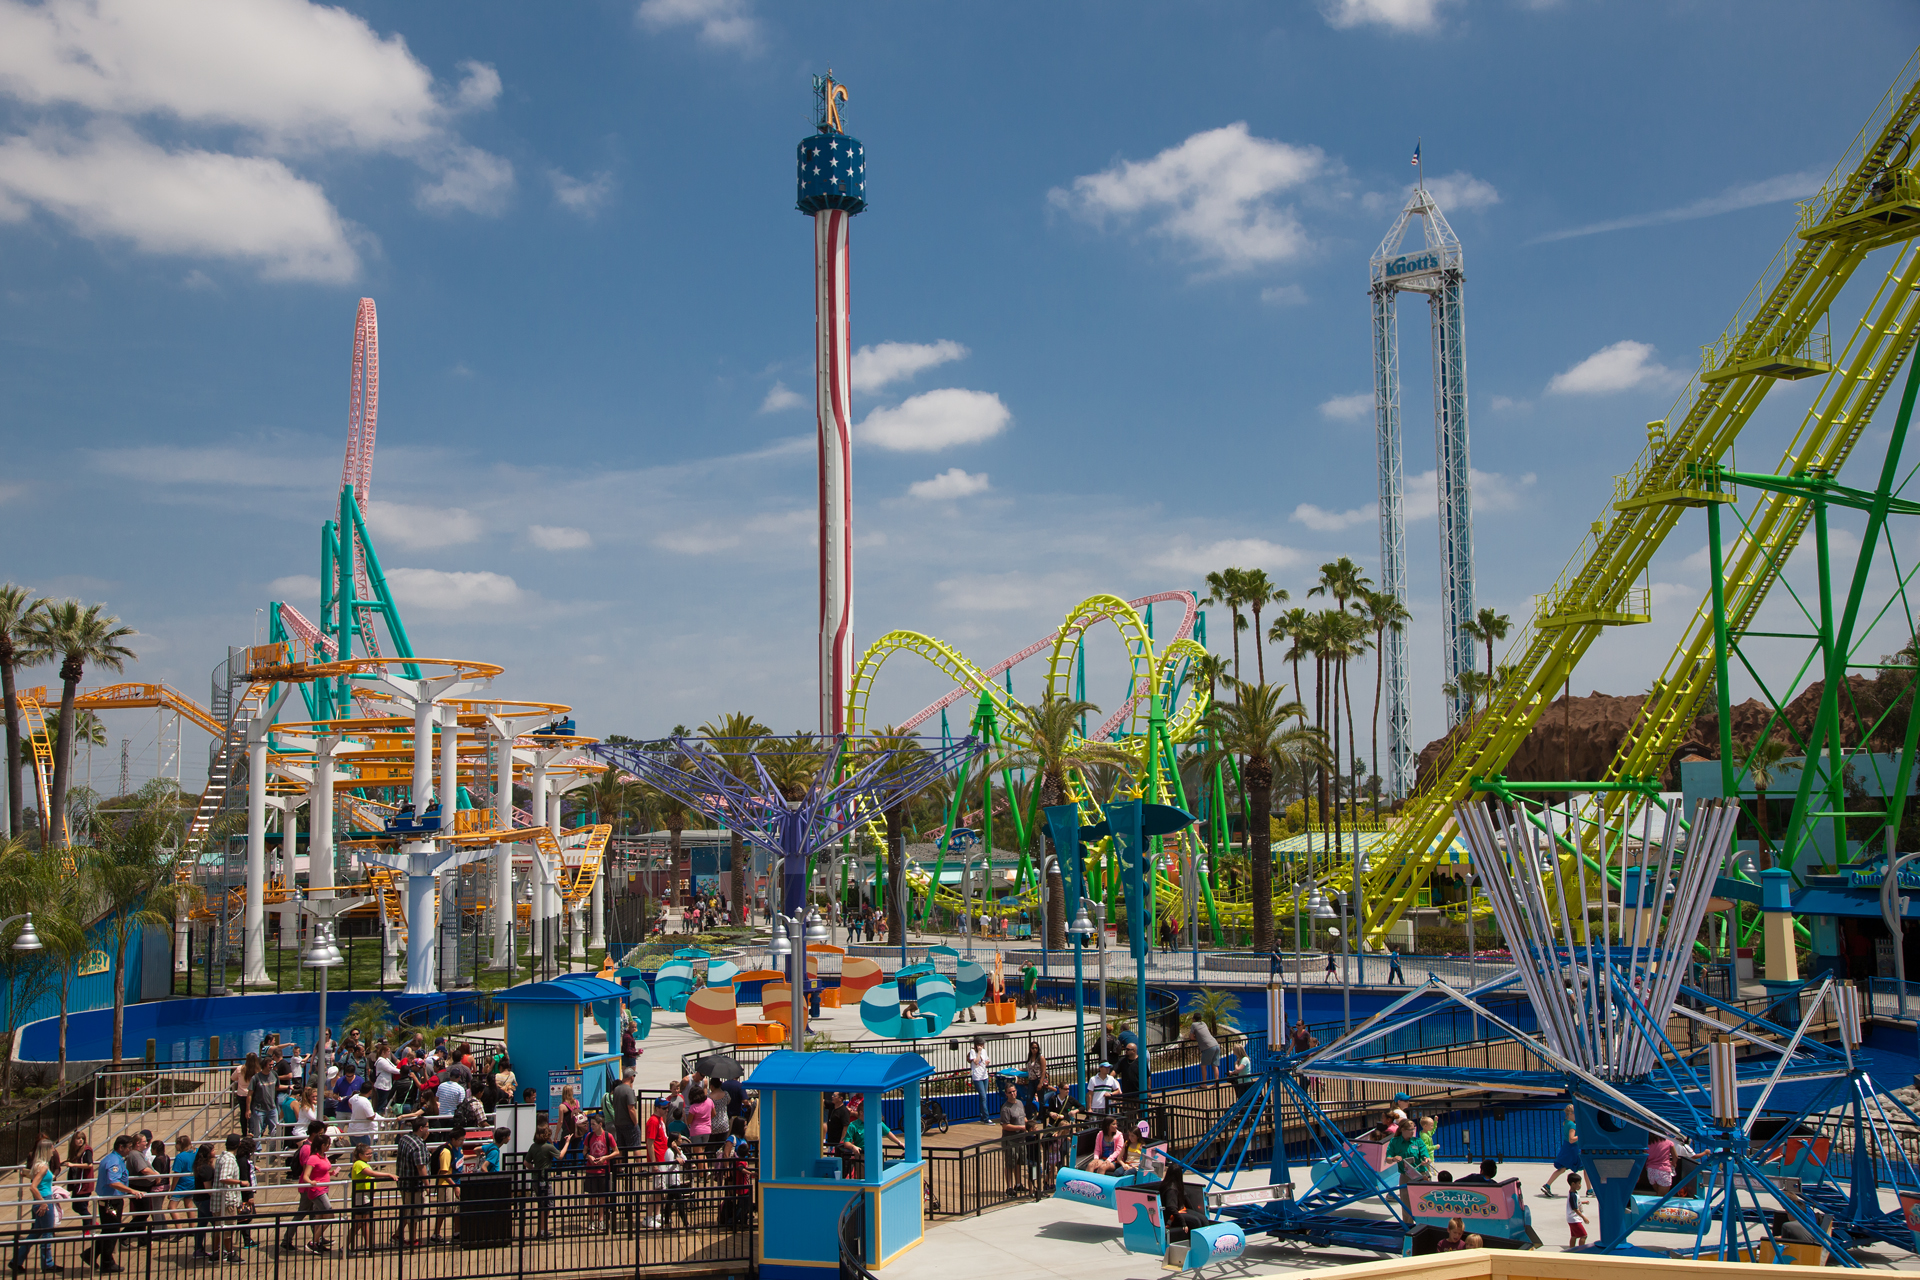 located in southern californias orange county knotts berry farm is an iconic theme park with attractions and entertainment in themed areas inspired by - Knotts Berry Farm Halloween Tickets